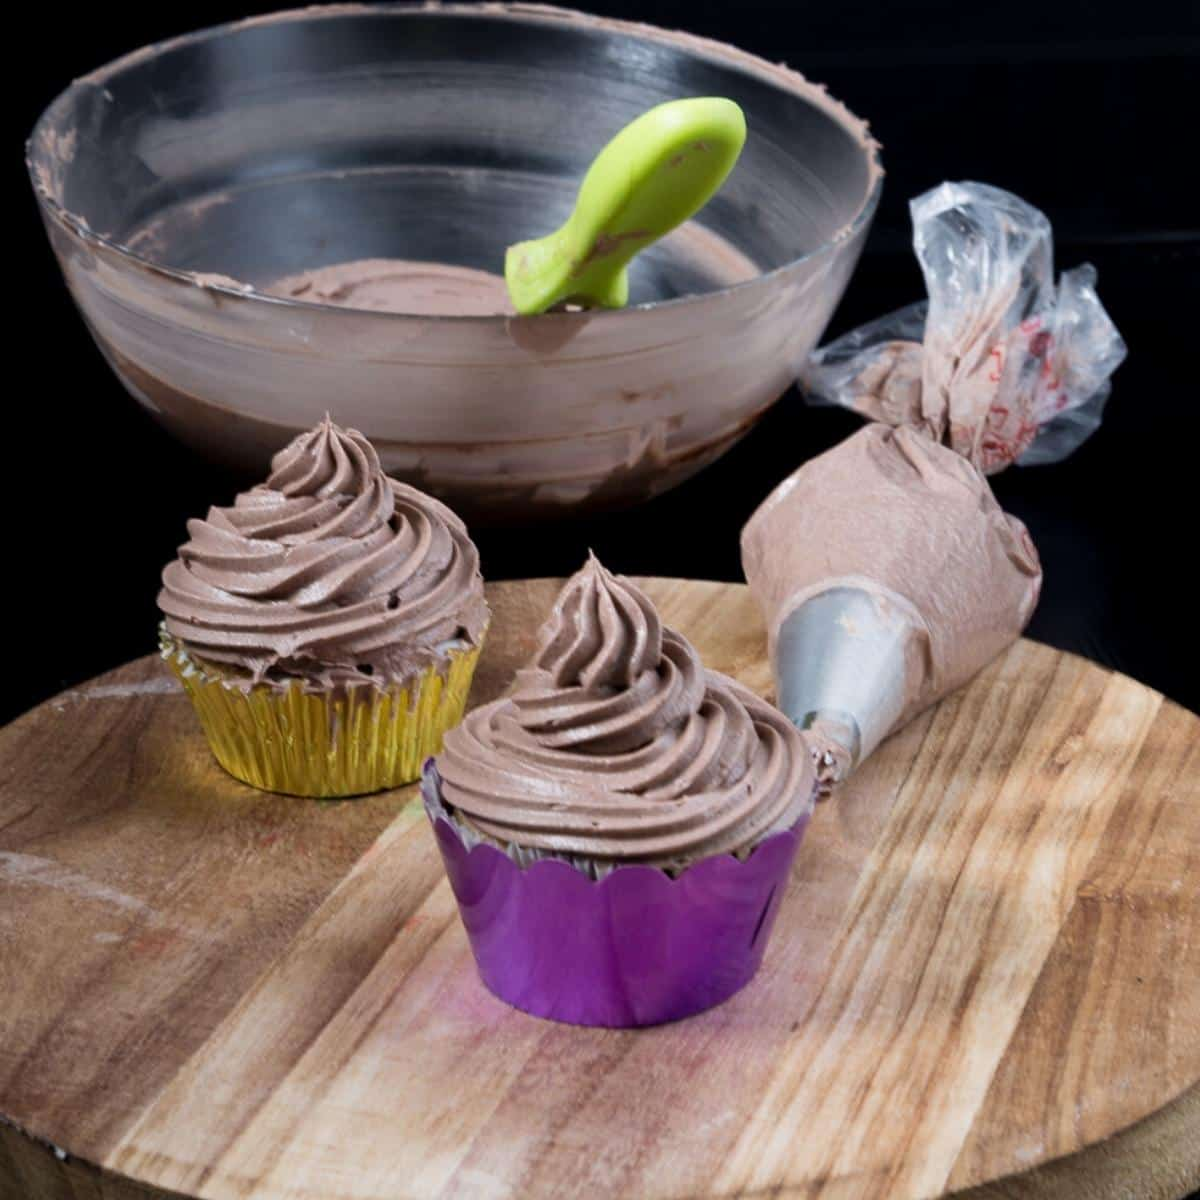 Frosted cupcakes on a wooden table.